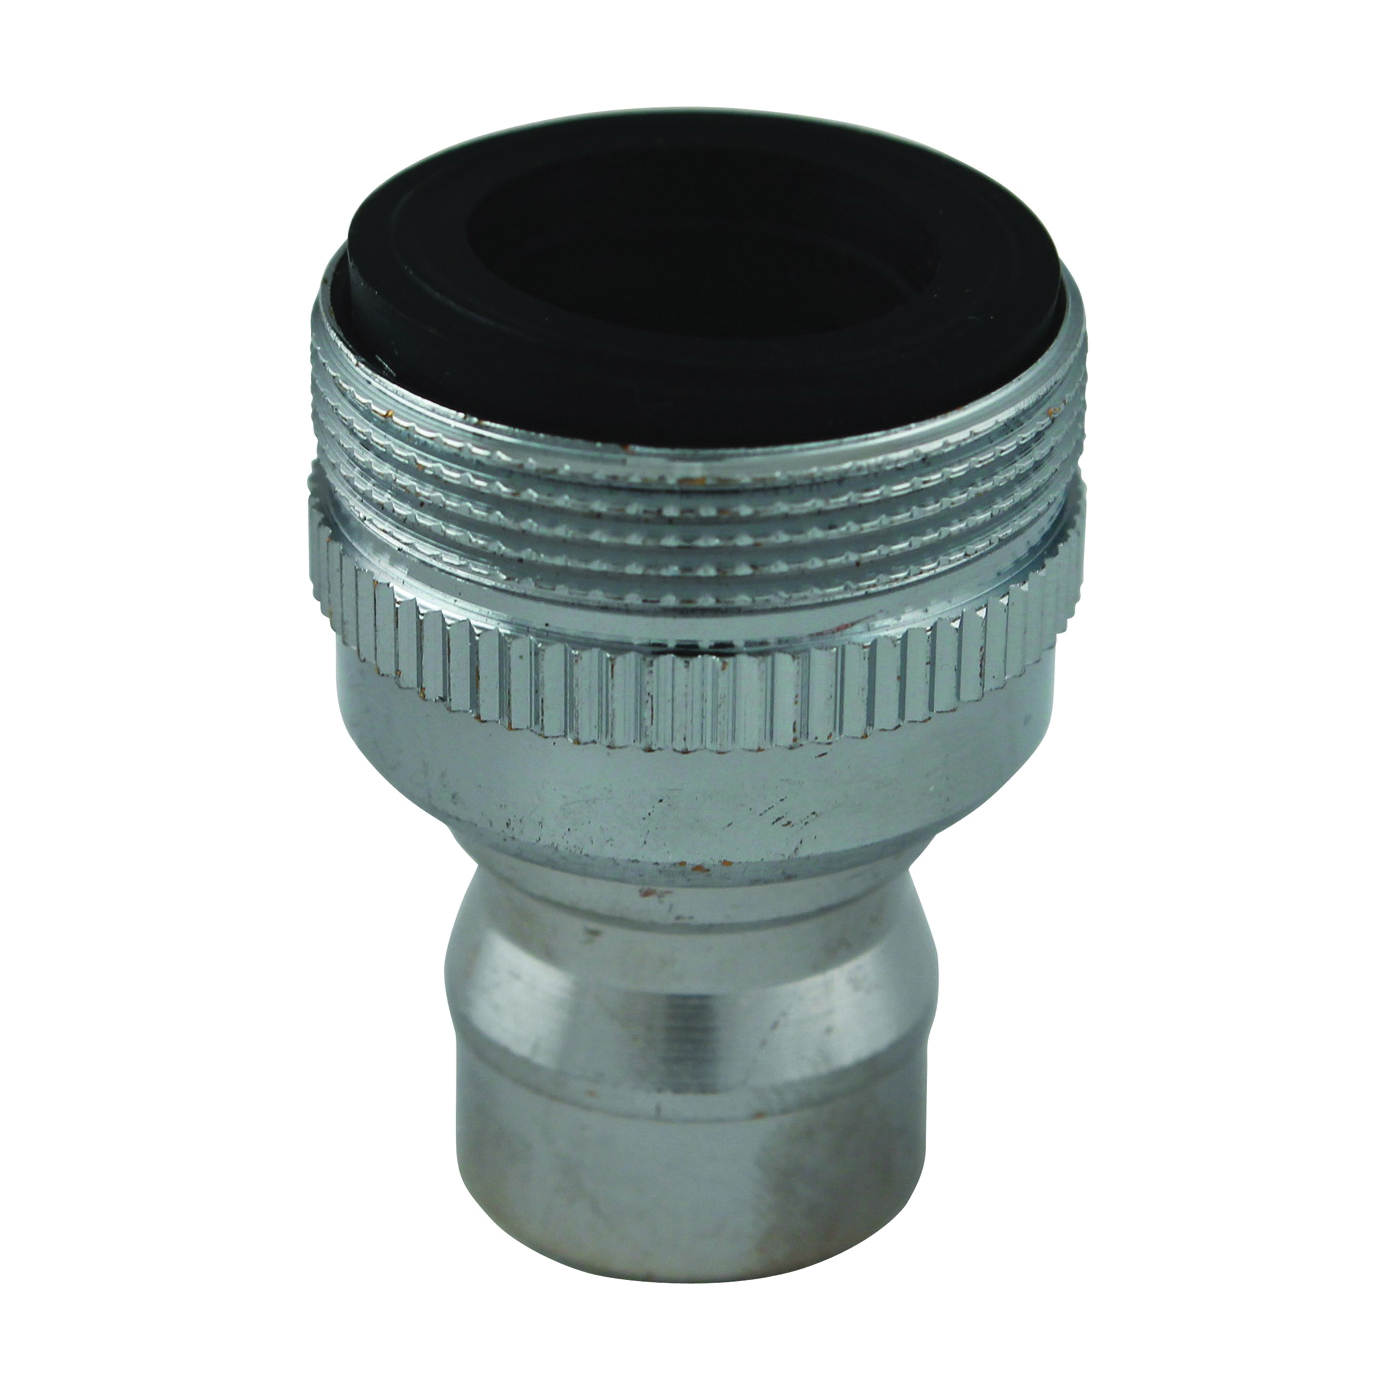 Picture of Plumb Pak PP800-6 Faucet Aerator Adapter, 55/64 x 15/16-27 in, Threaded, Chrome